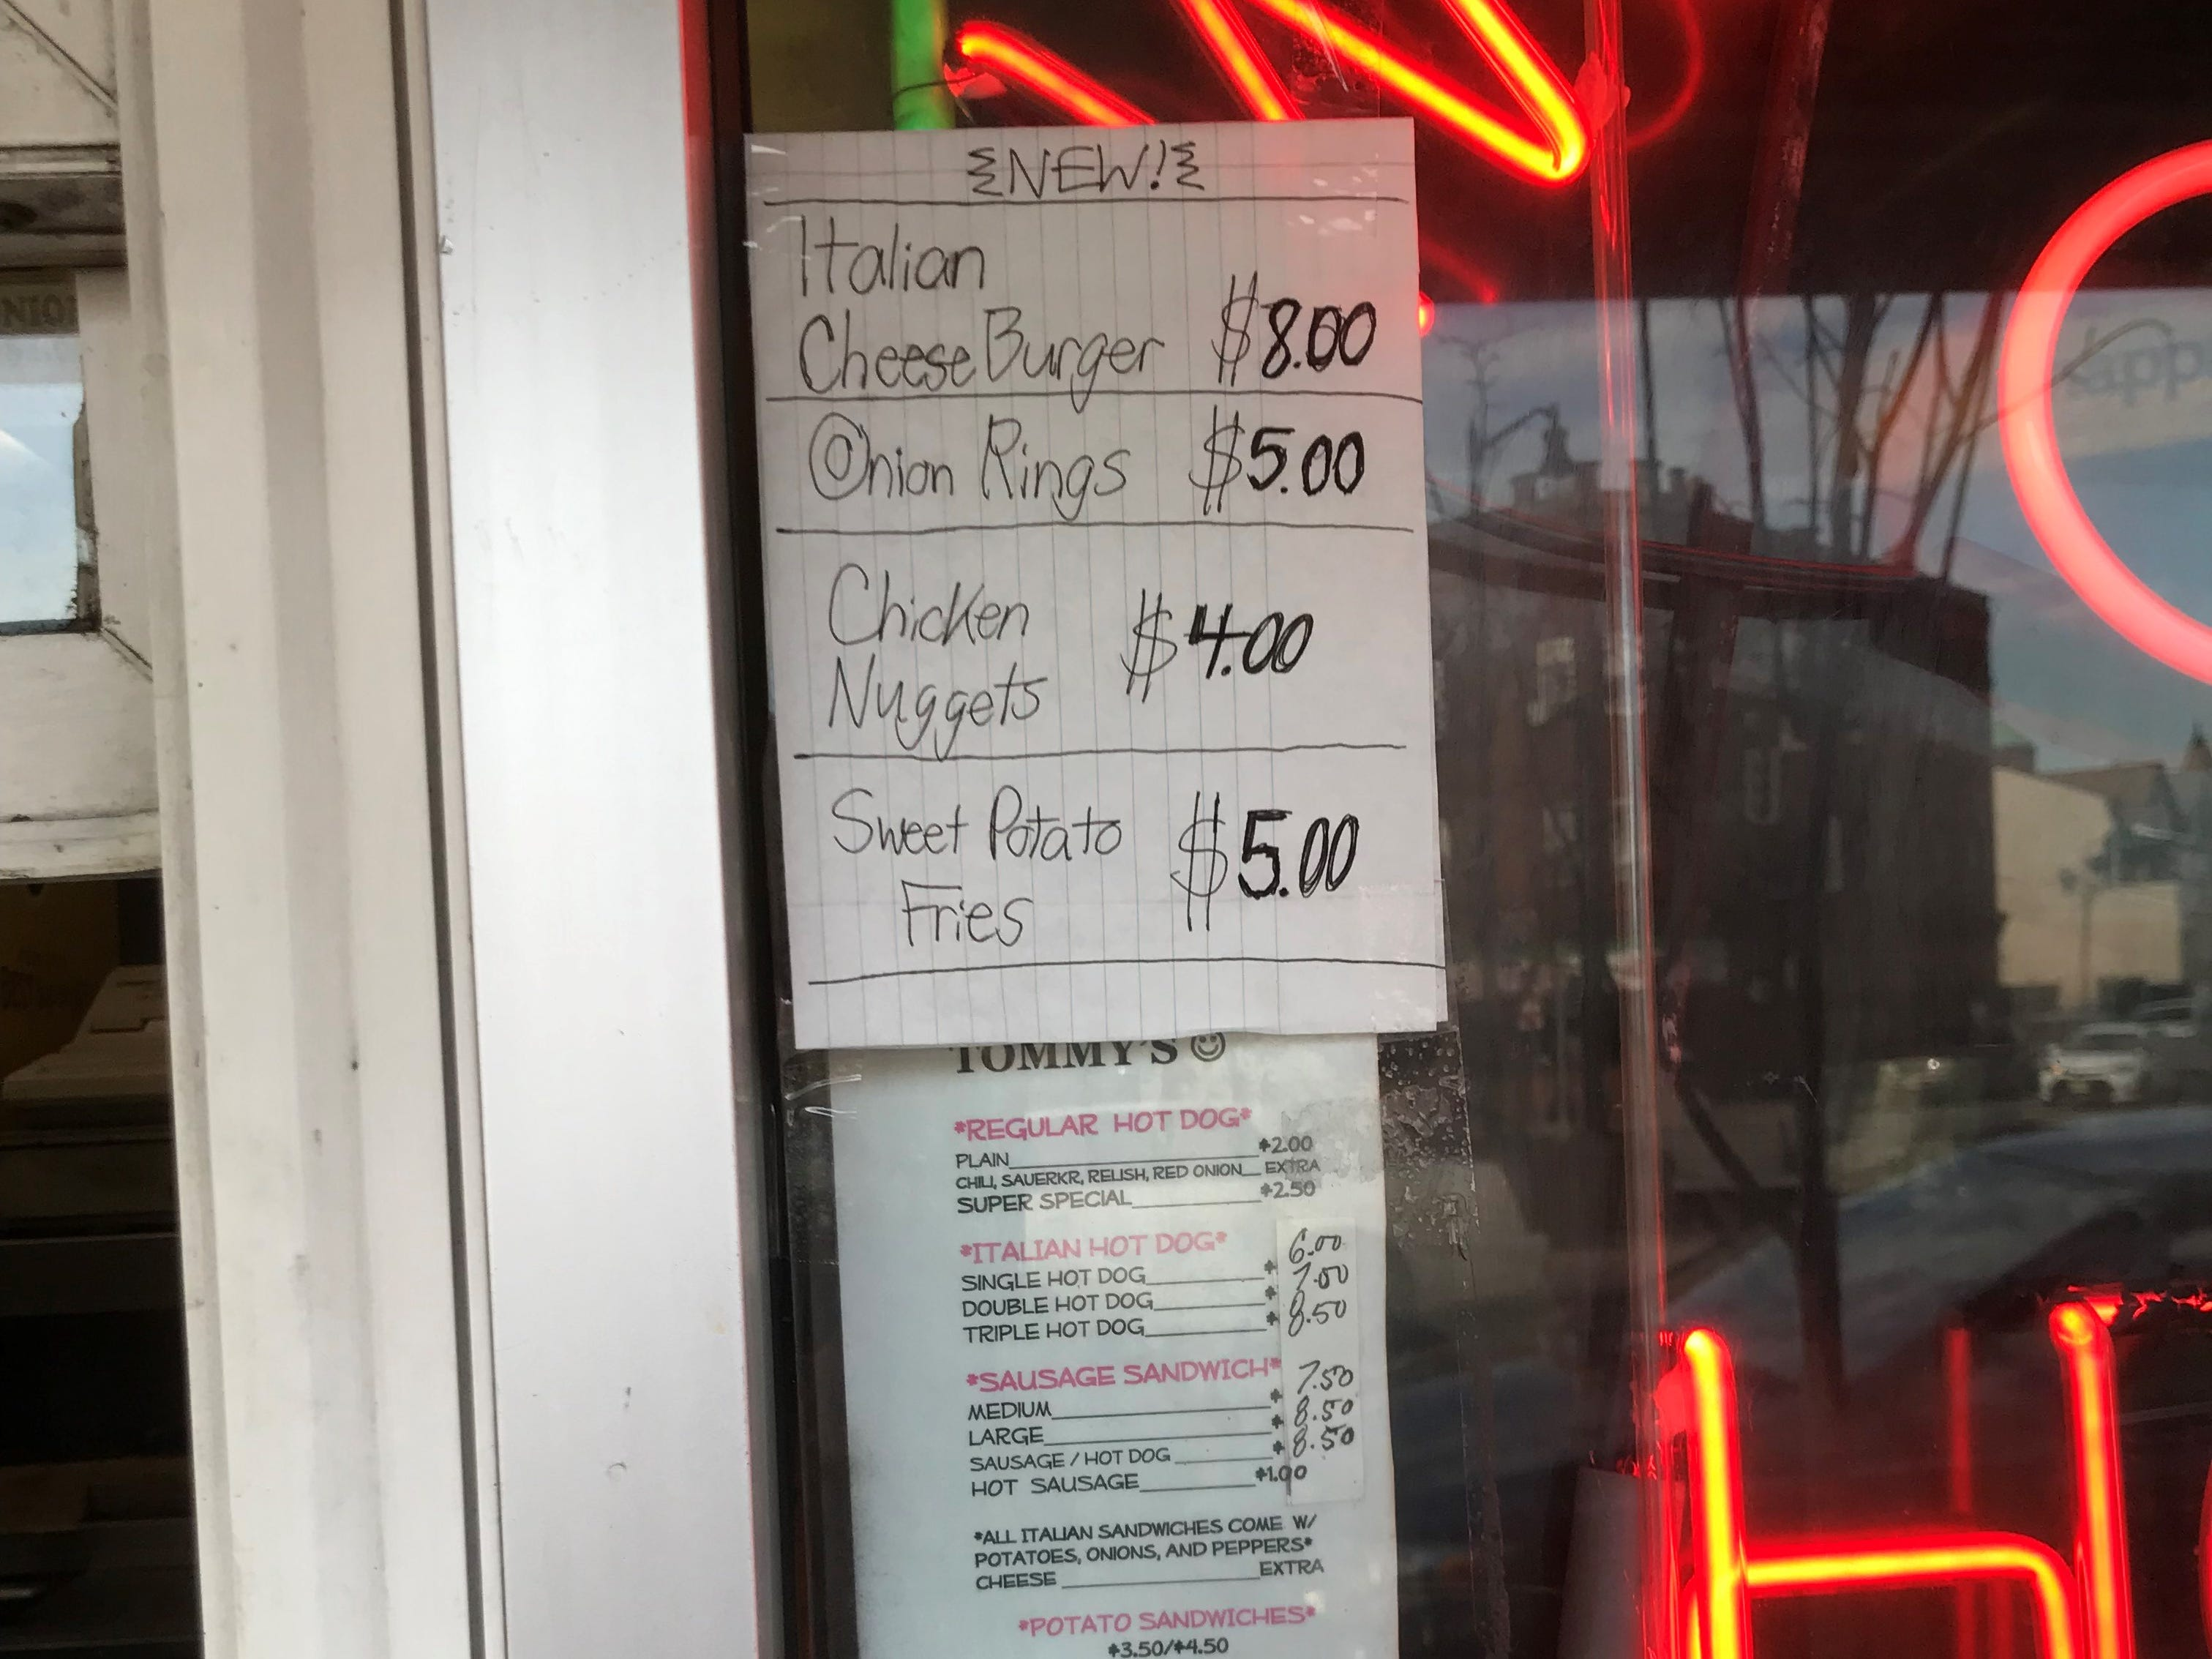 After 50 years in business, Tommy's has expanded the menu slightly, but didn't bother to reprint it.